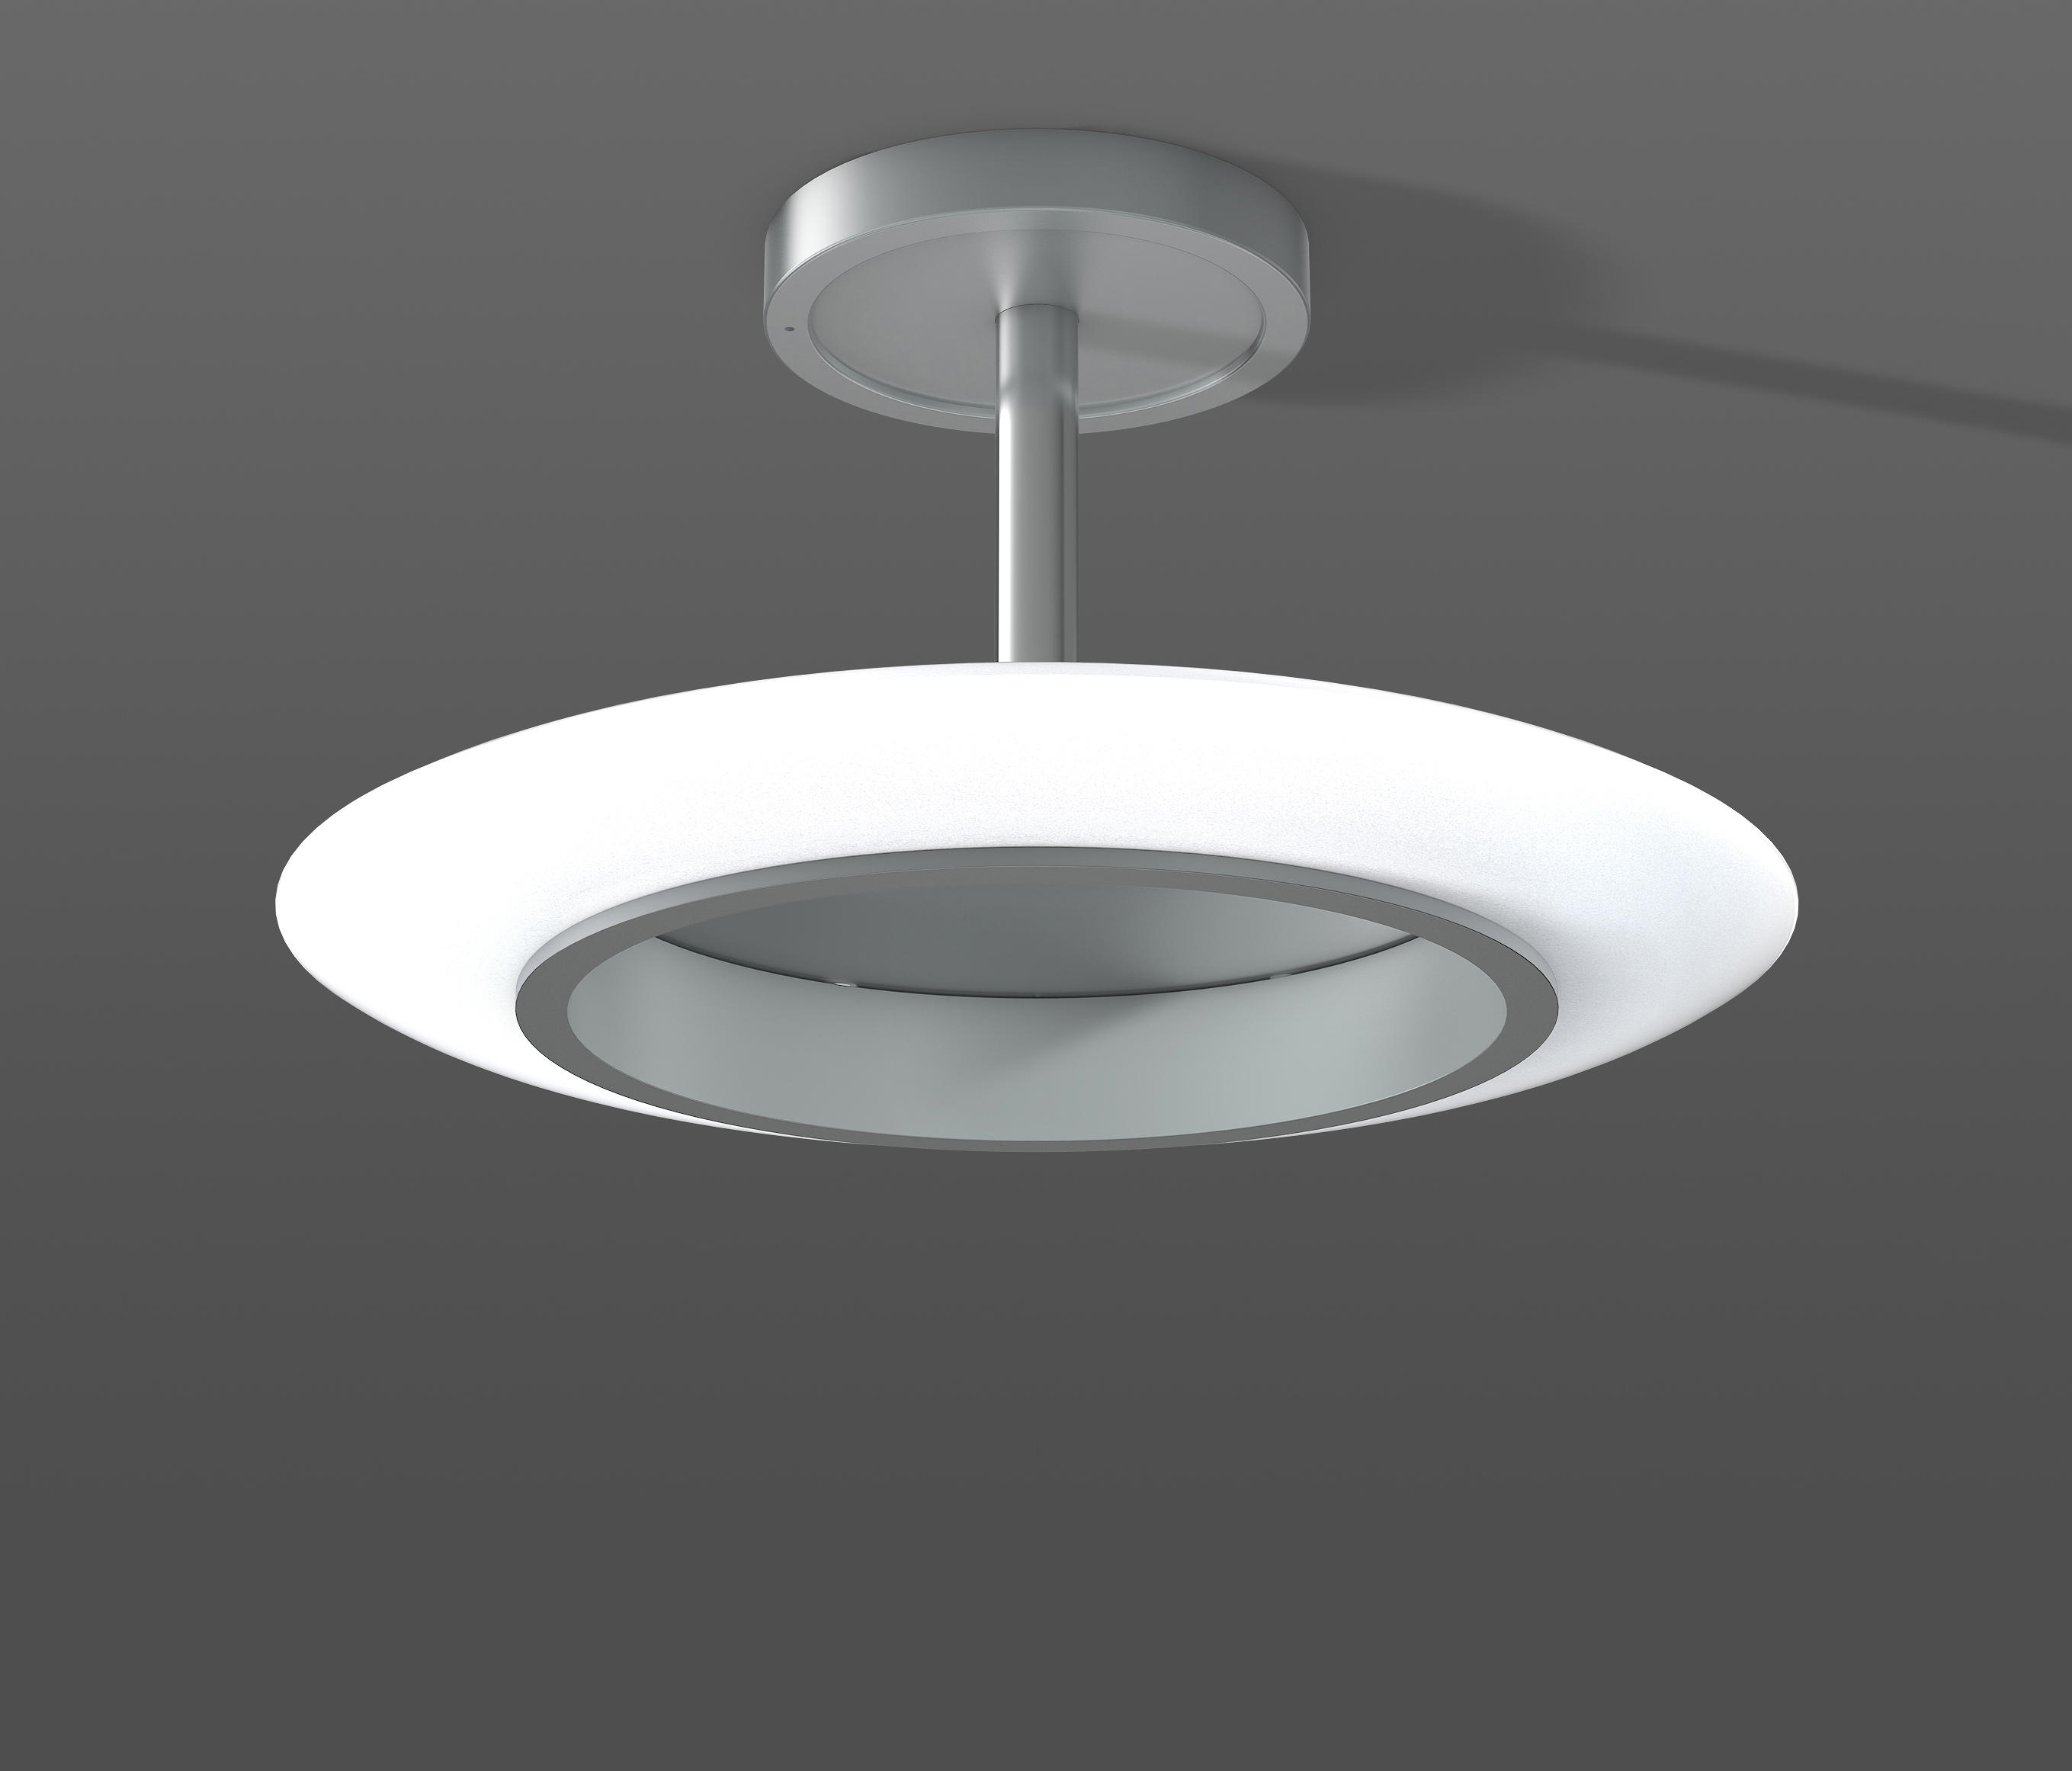 Ring Of Fire Ceiling Luminaires Lights From Rzb